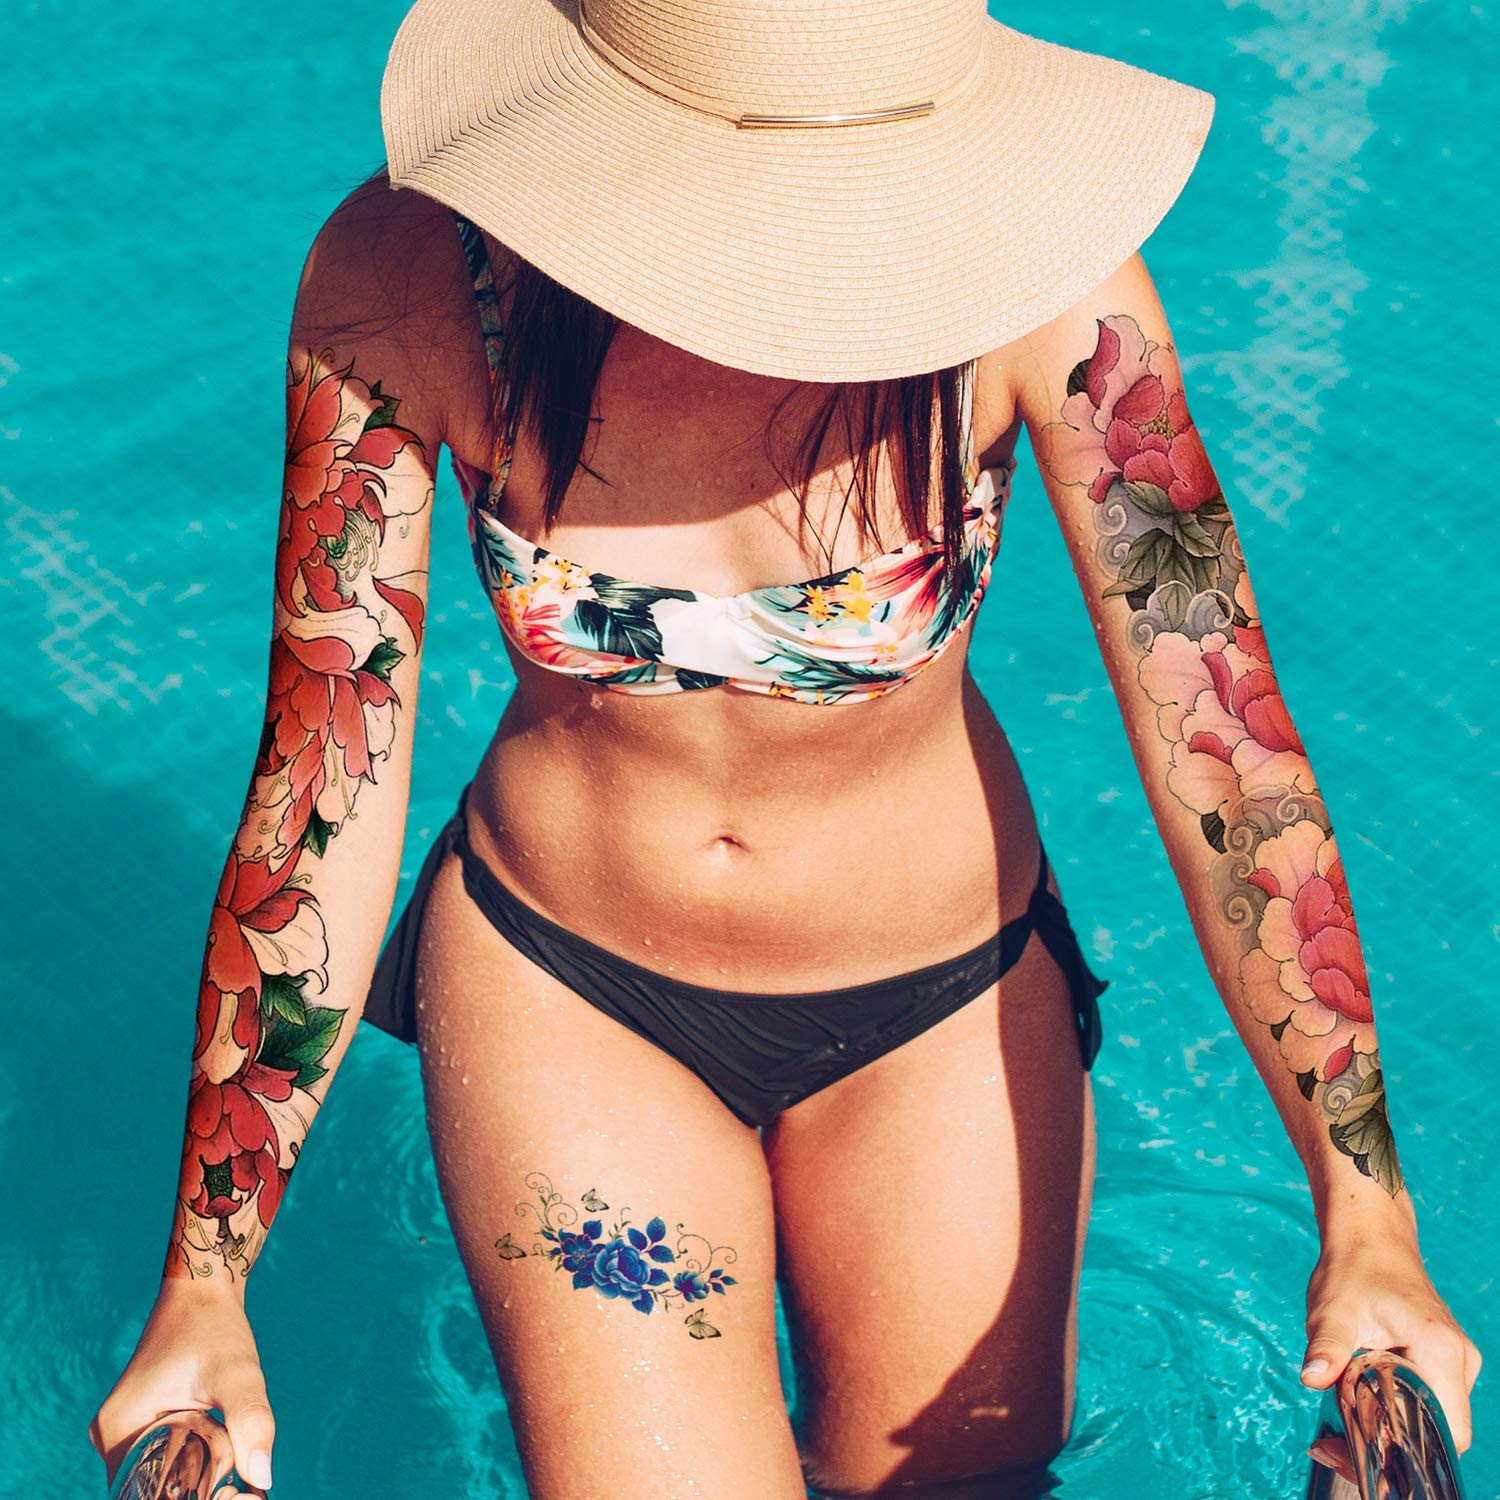 Full Sleeve Temporary Tattoos Flowers For Women Teens And Kids 16 Sheets Christmas Sleeve Tattoo For Women Long Lasting Waterproof Full Arm Fake